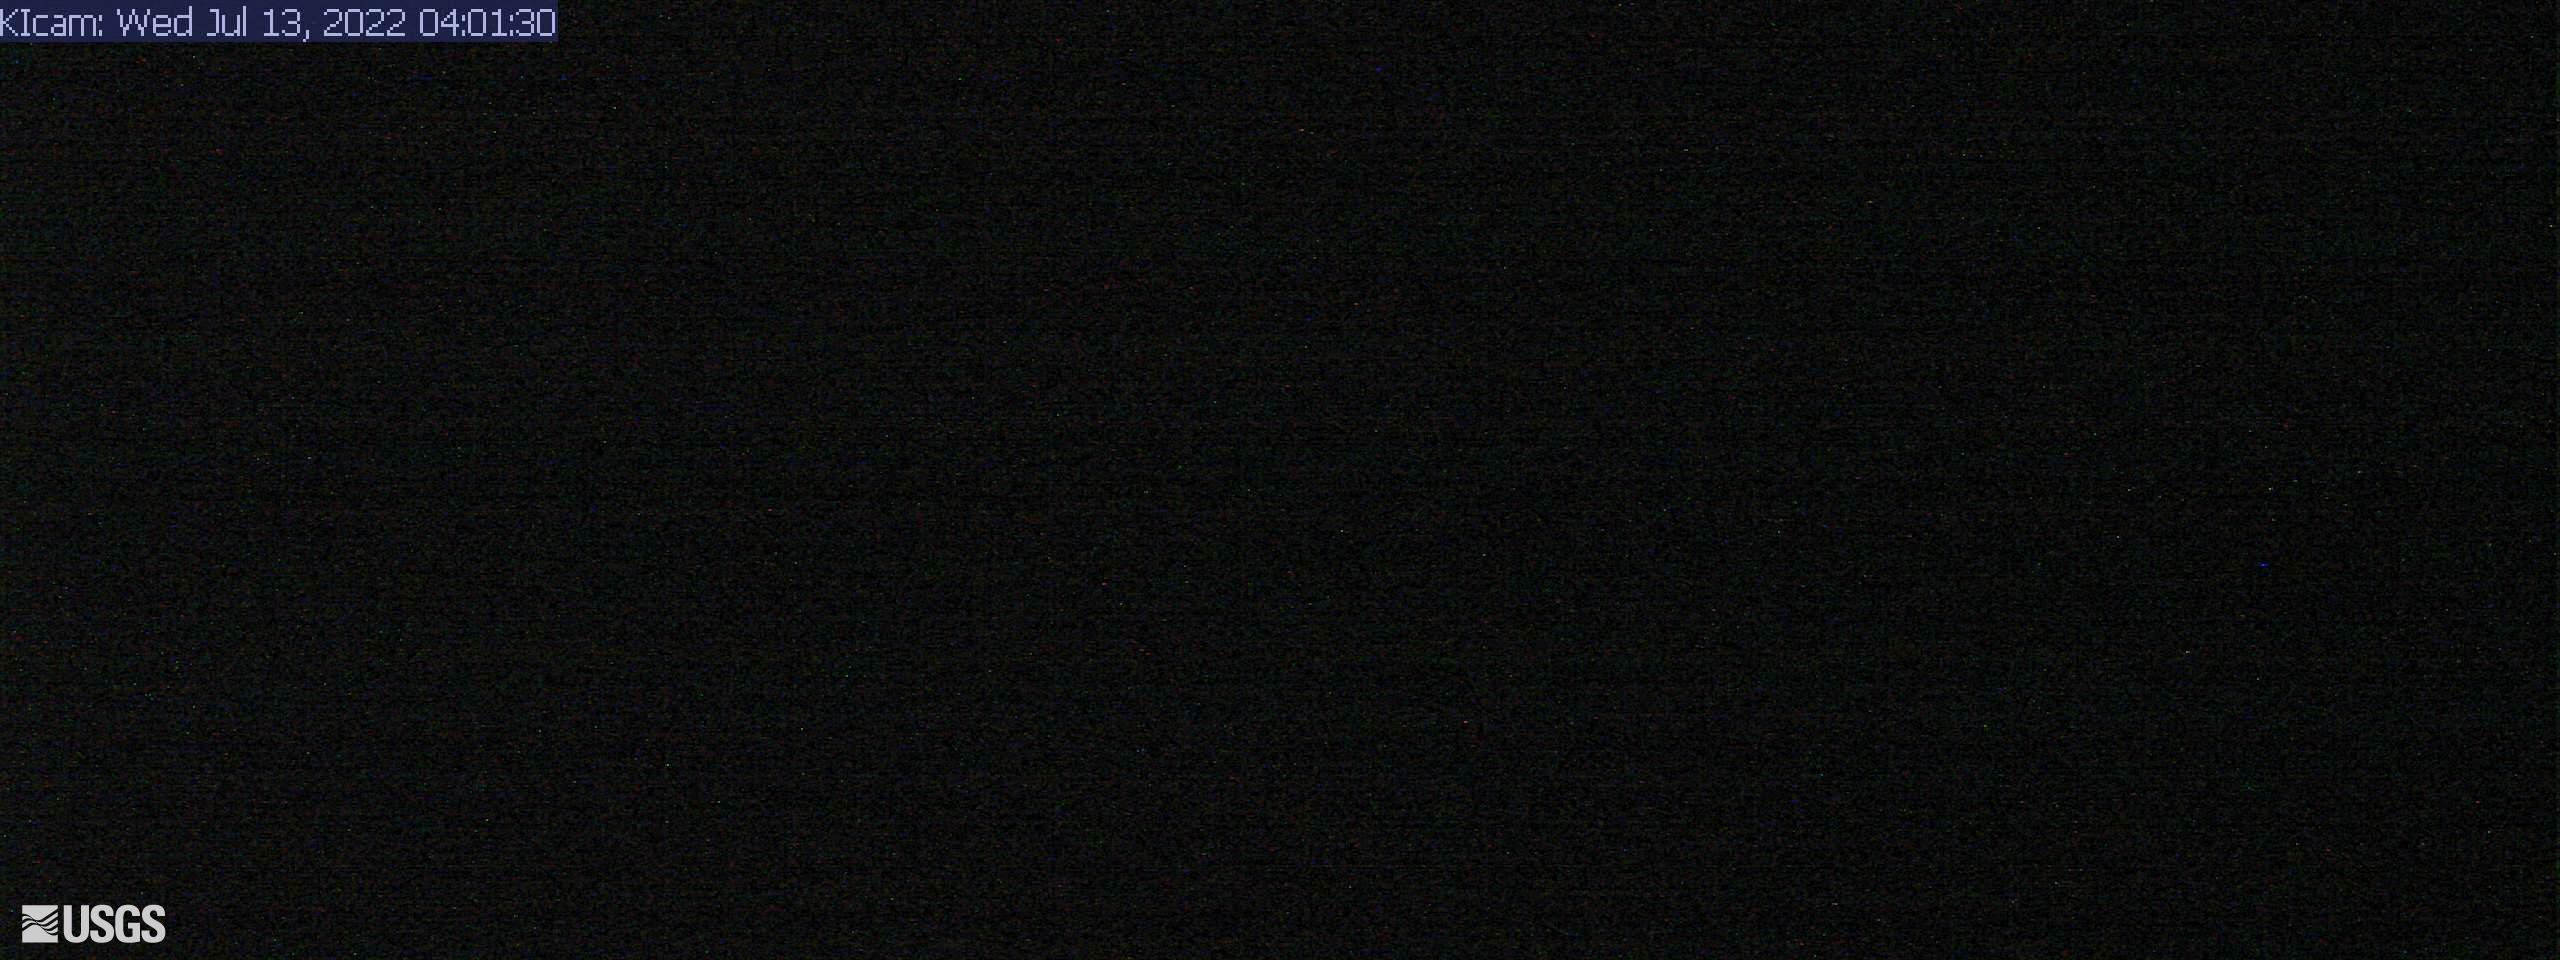 Hawaii Volcanoes National Park Kilauea Halema'uma'u crater live